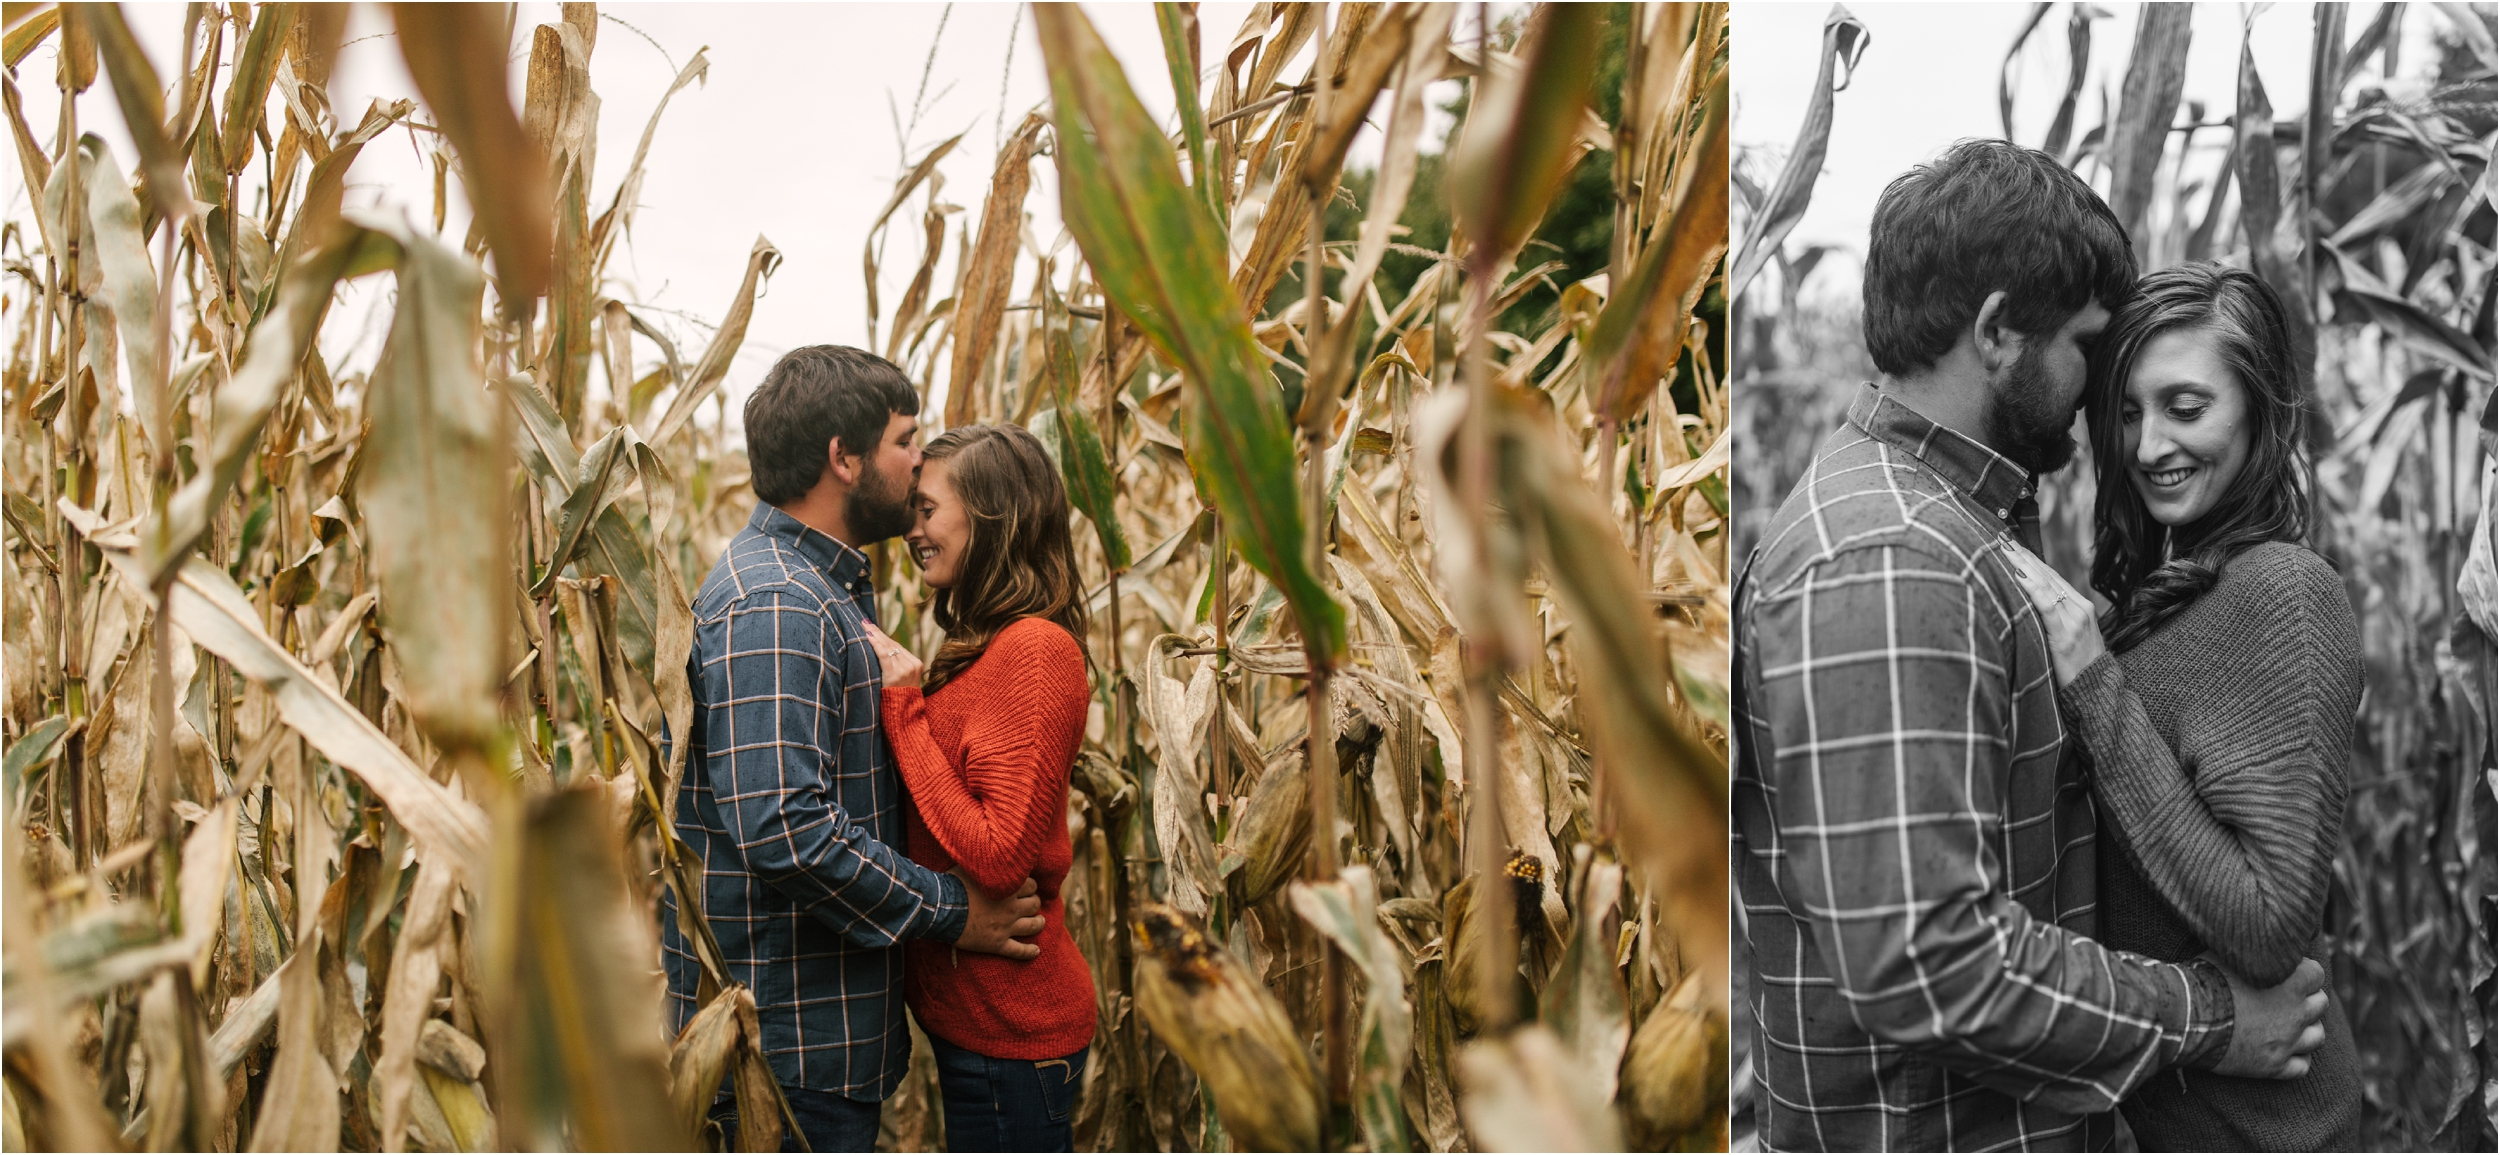 Countryside Engagement Photos_ Minnesota Wedding Photographer_Stephanie Lynn Photography_0063.jpg